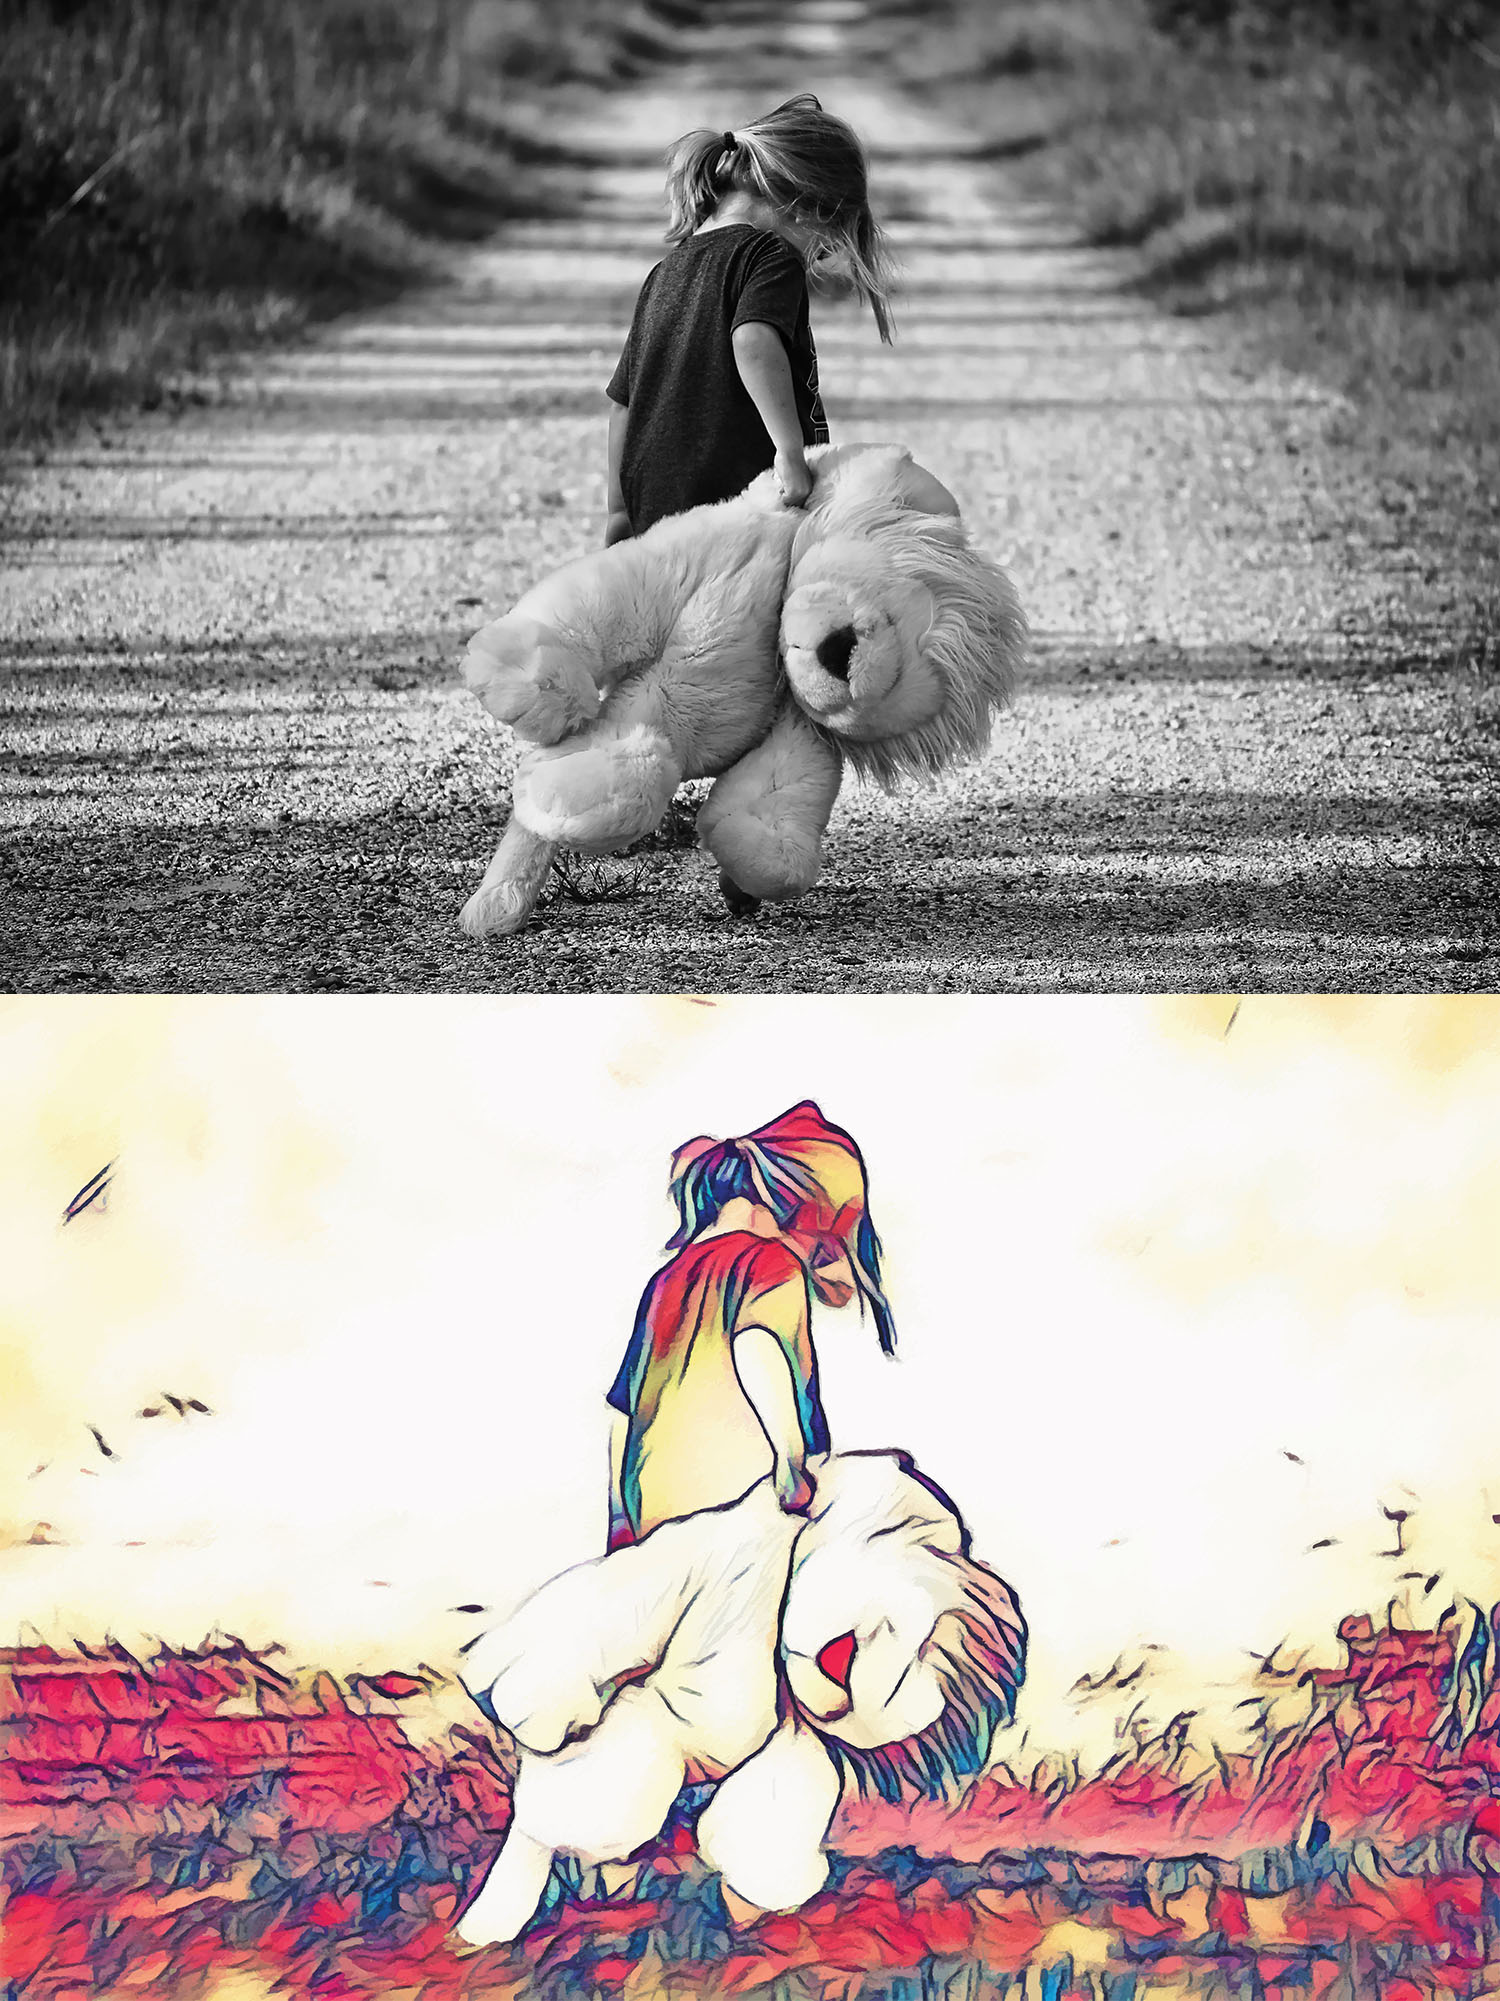 Before and after stylized image of a girl walking away from the camera down a dirt road dragging an enormous lion stuffed animal